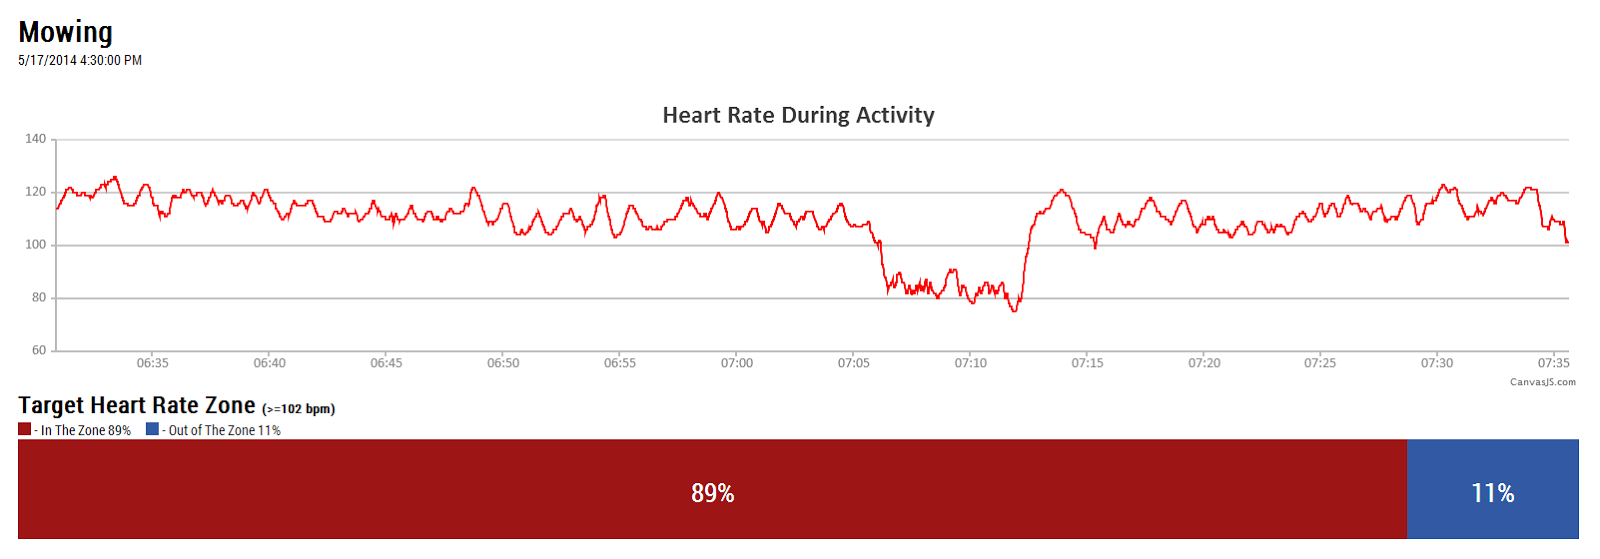 Not stravas suffer score thejoestory tech the mowing session you would see that you spend 89 of the time in the target heart rate zone the score shows that the workout was not that intense geenschuldenfo Image collections